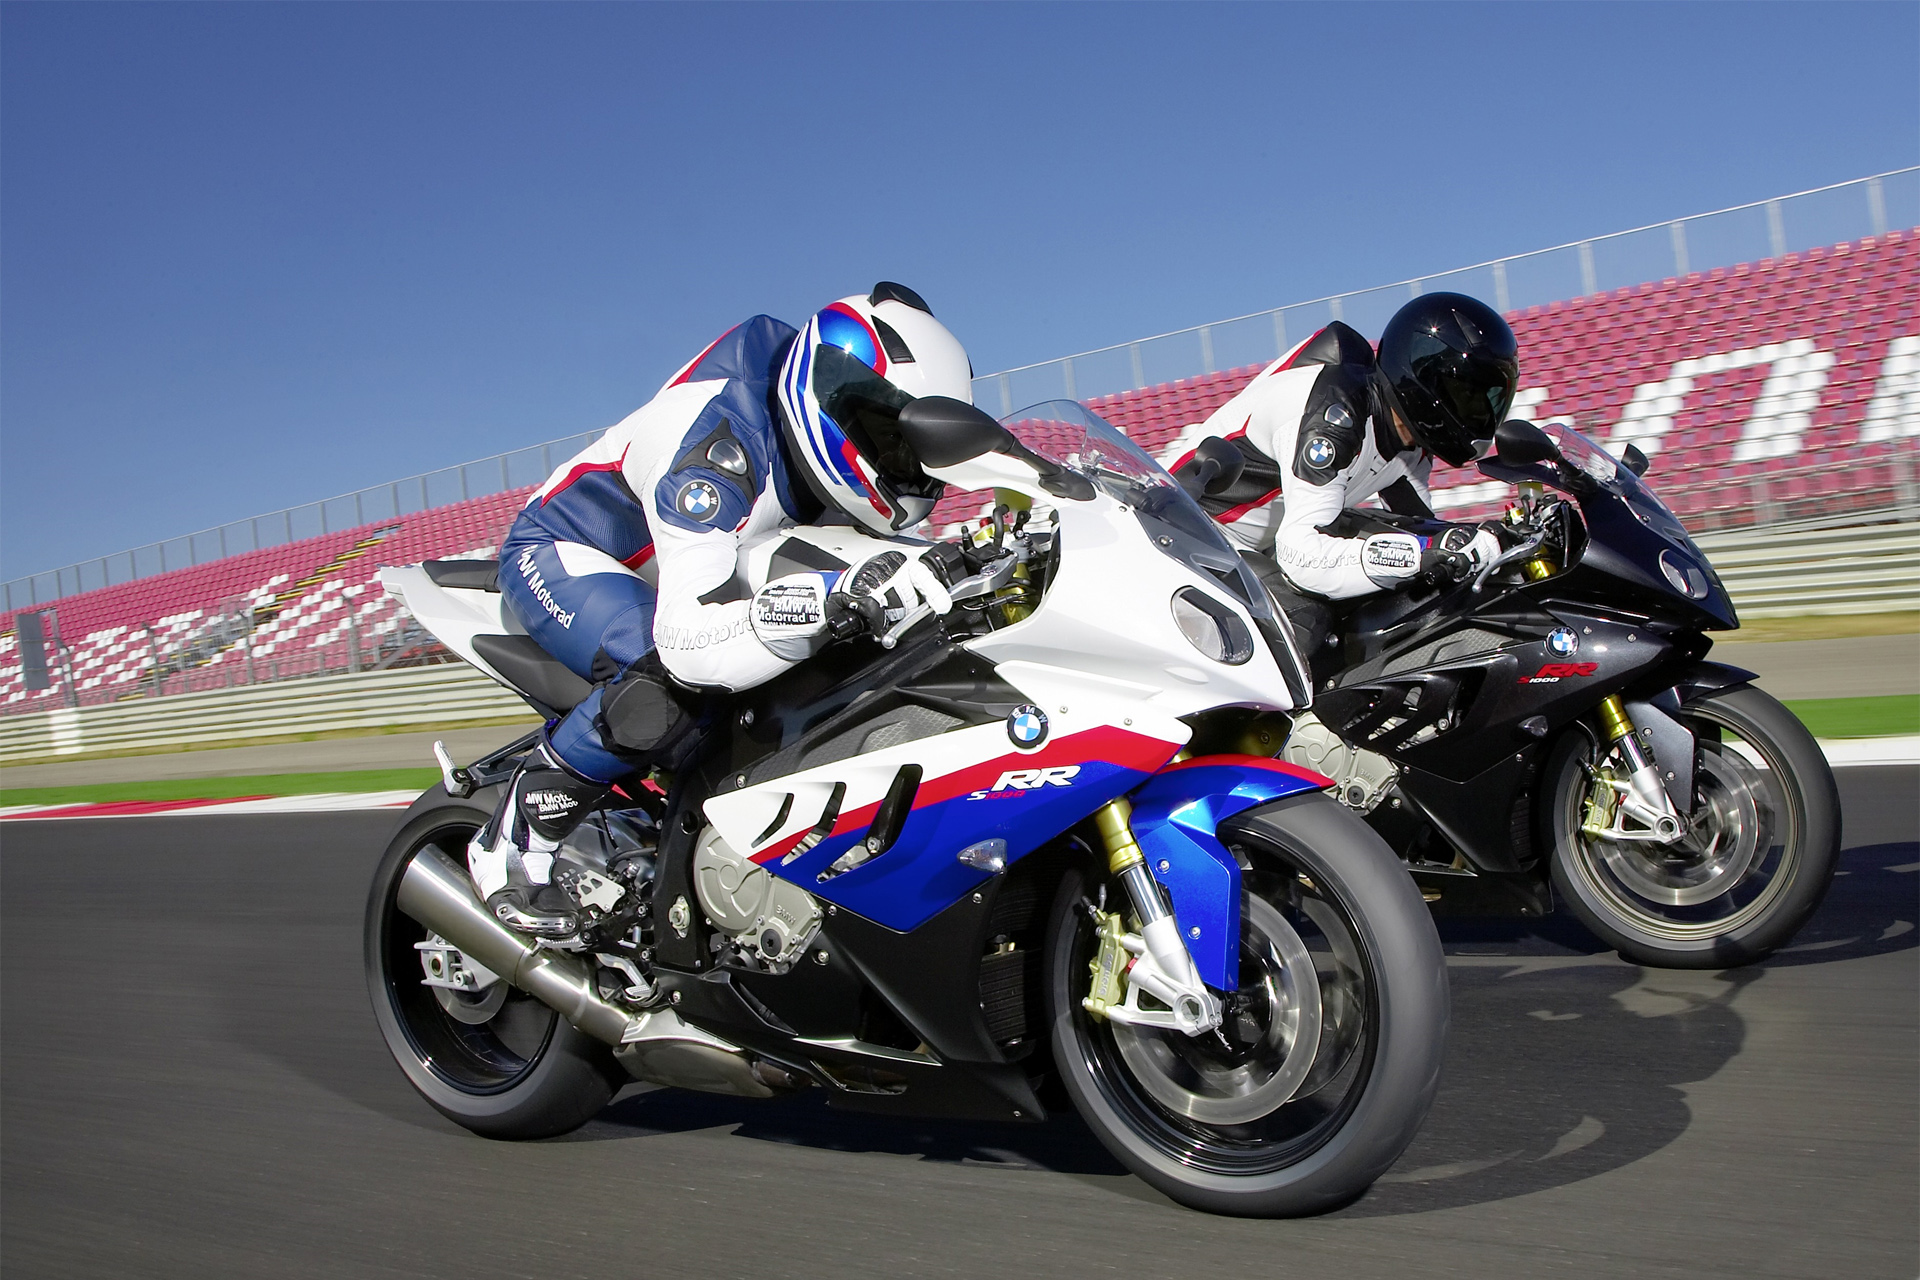 BMW S1000RR picture # 71121 | BMW photo gallery | CarsBase.com